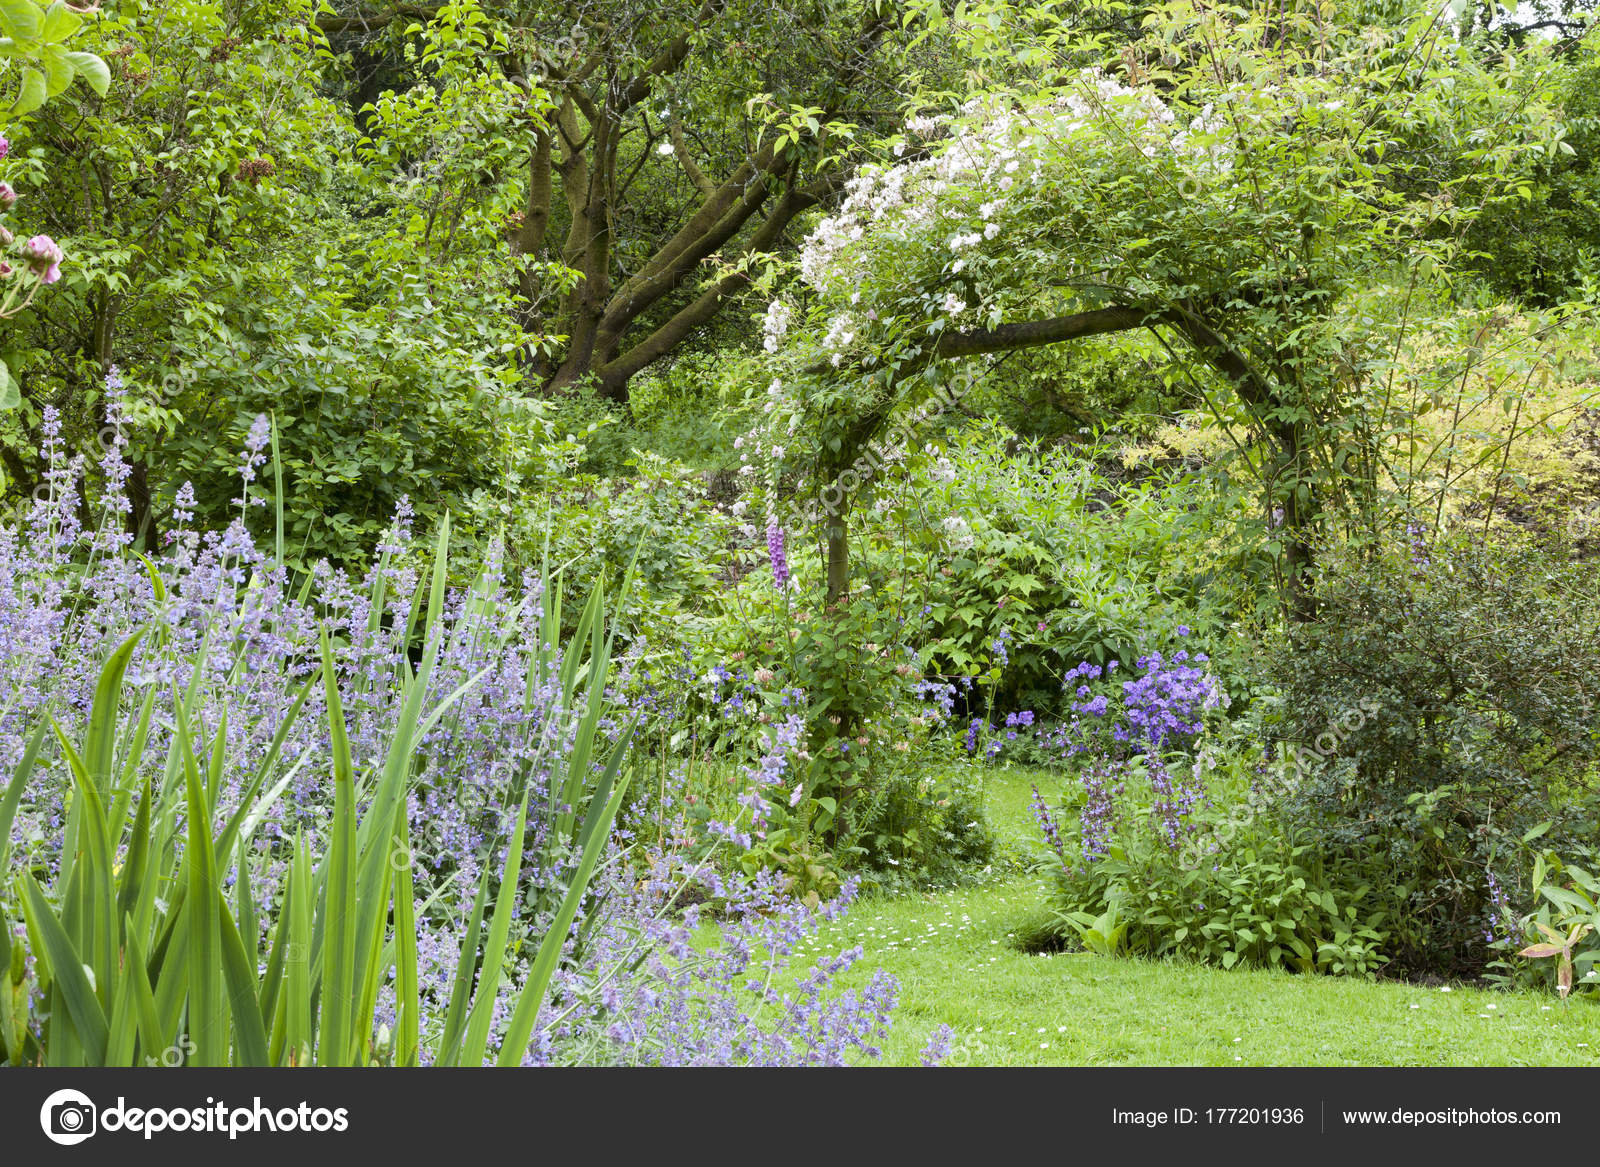 Colourful Summer Garden Bloom White Flowering Rose Arch Leafy Trees